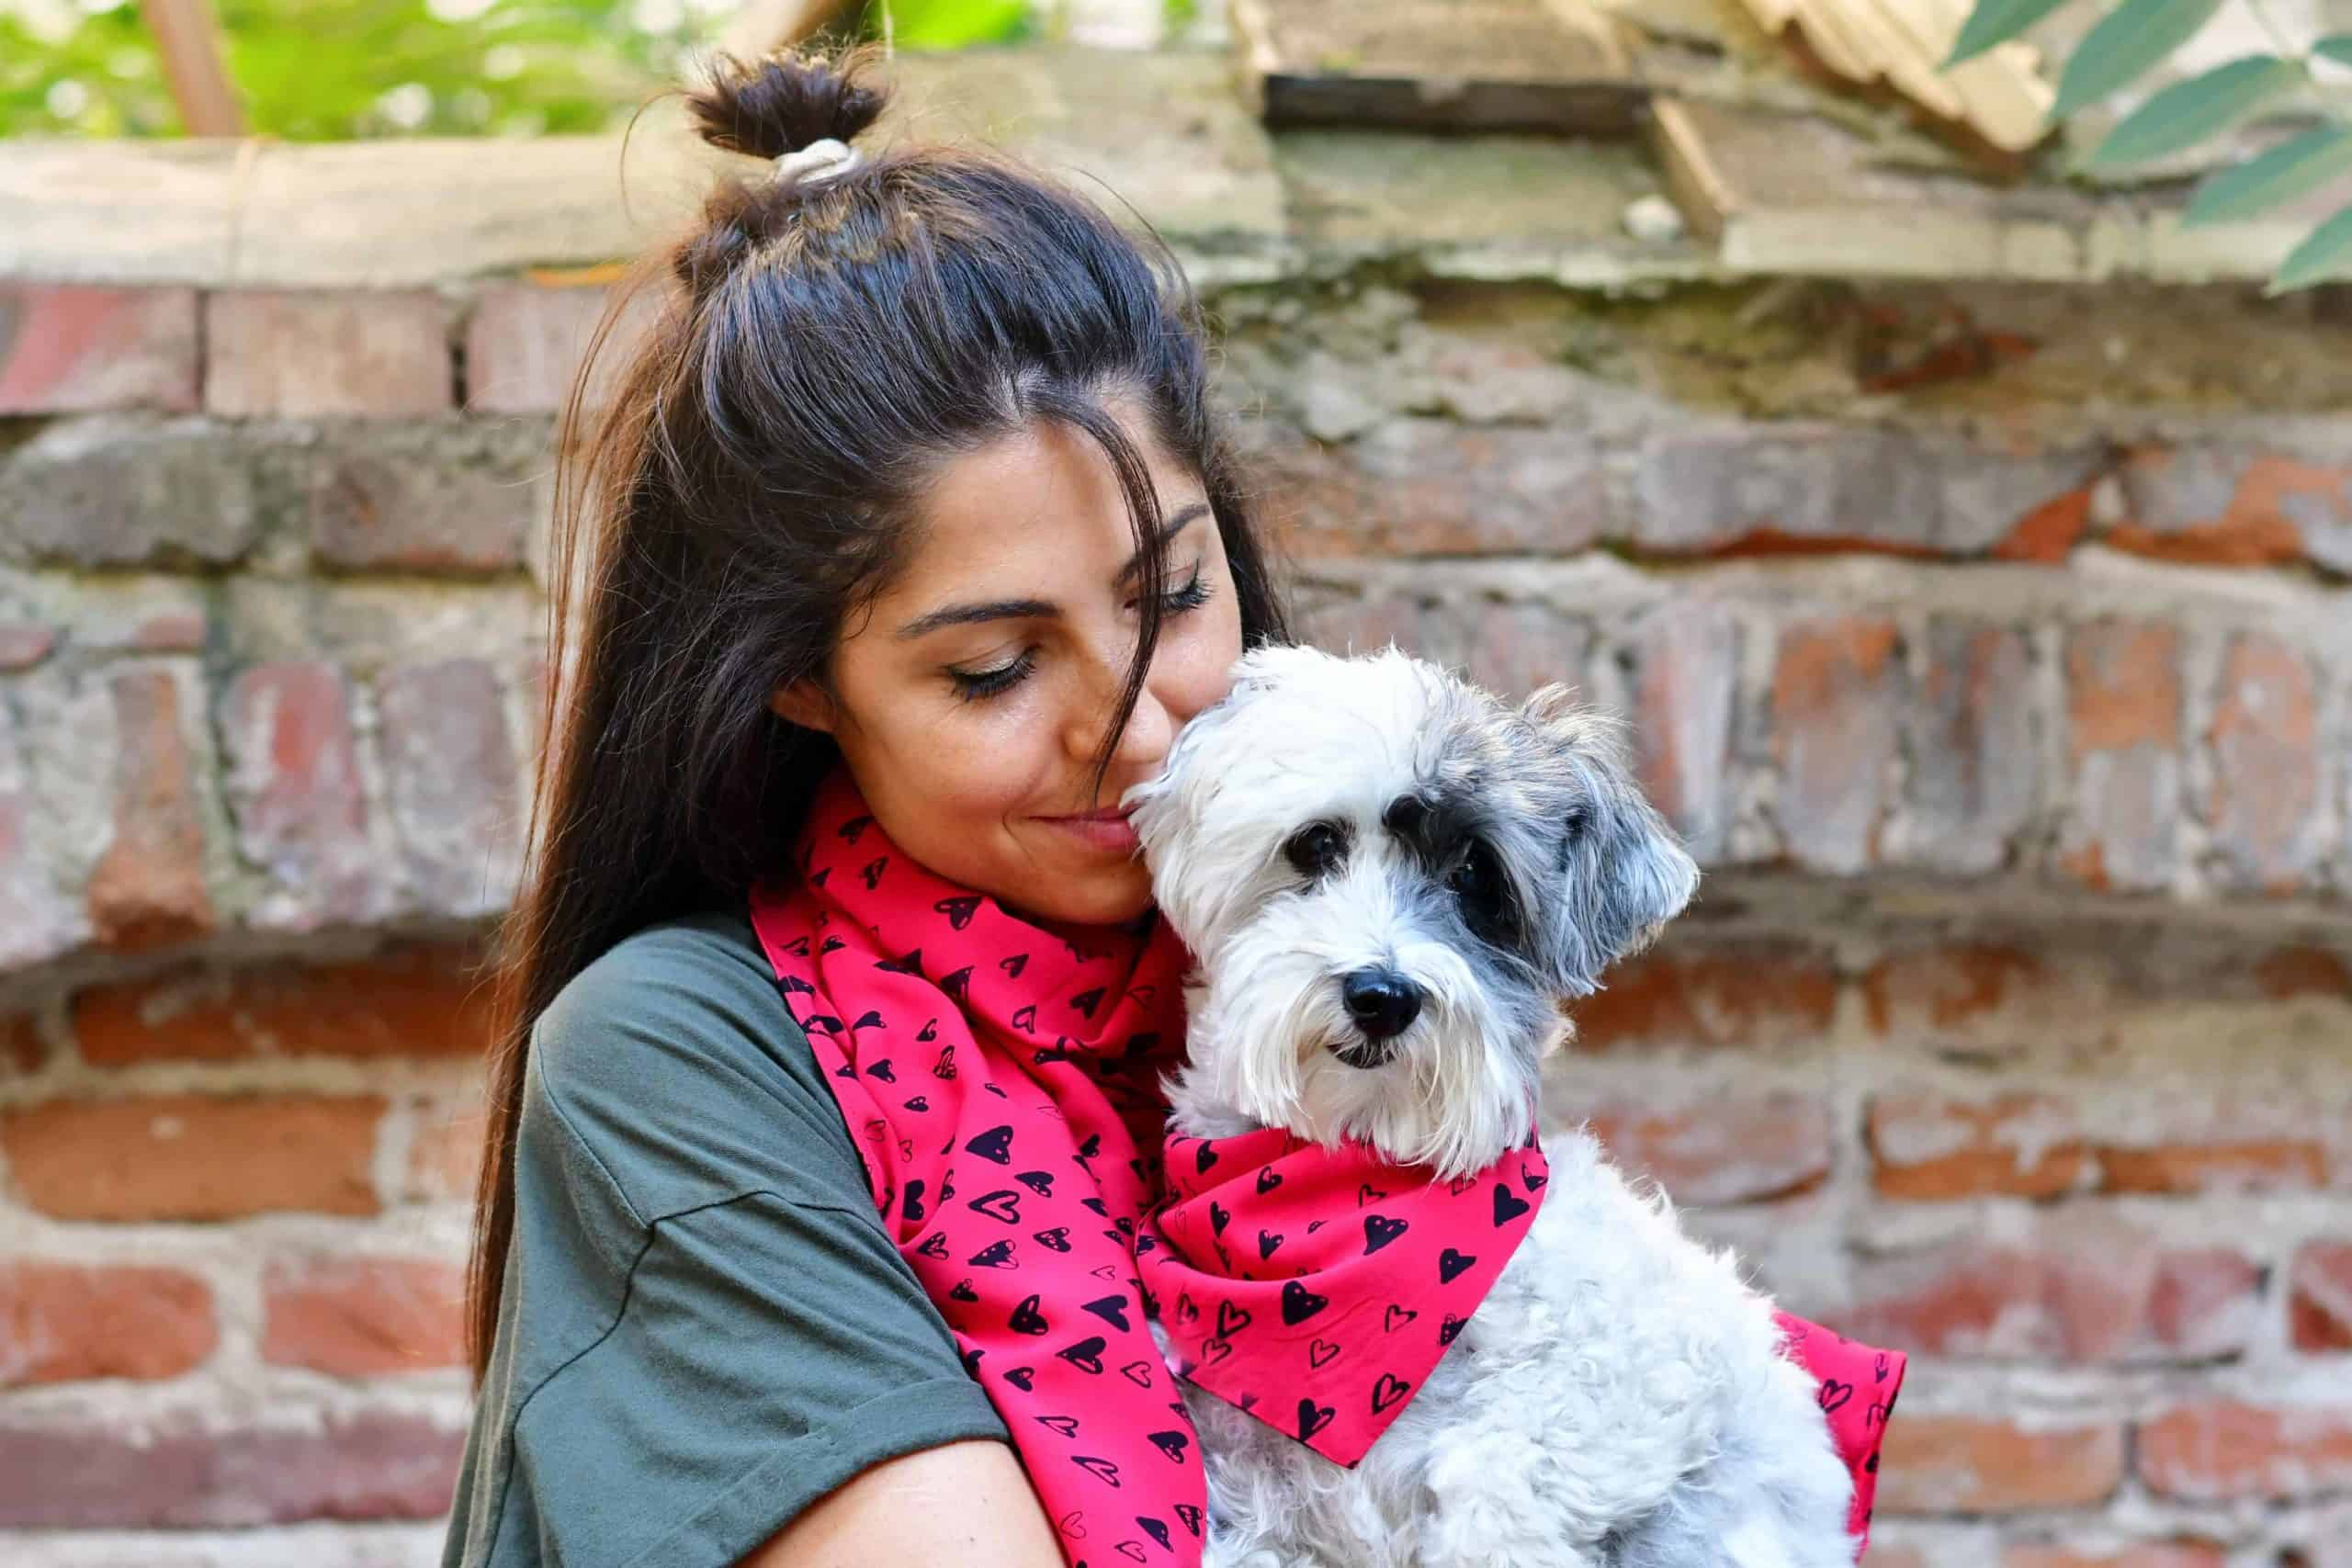 Woman wears scarf that matches her dog's bandana. Choose among perfect gift ideas for pet parents: automated toys, matching outfits, custom portraits, or custom collars and leashes.